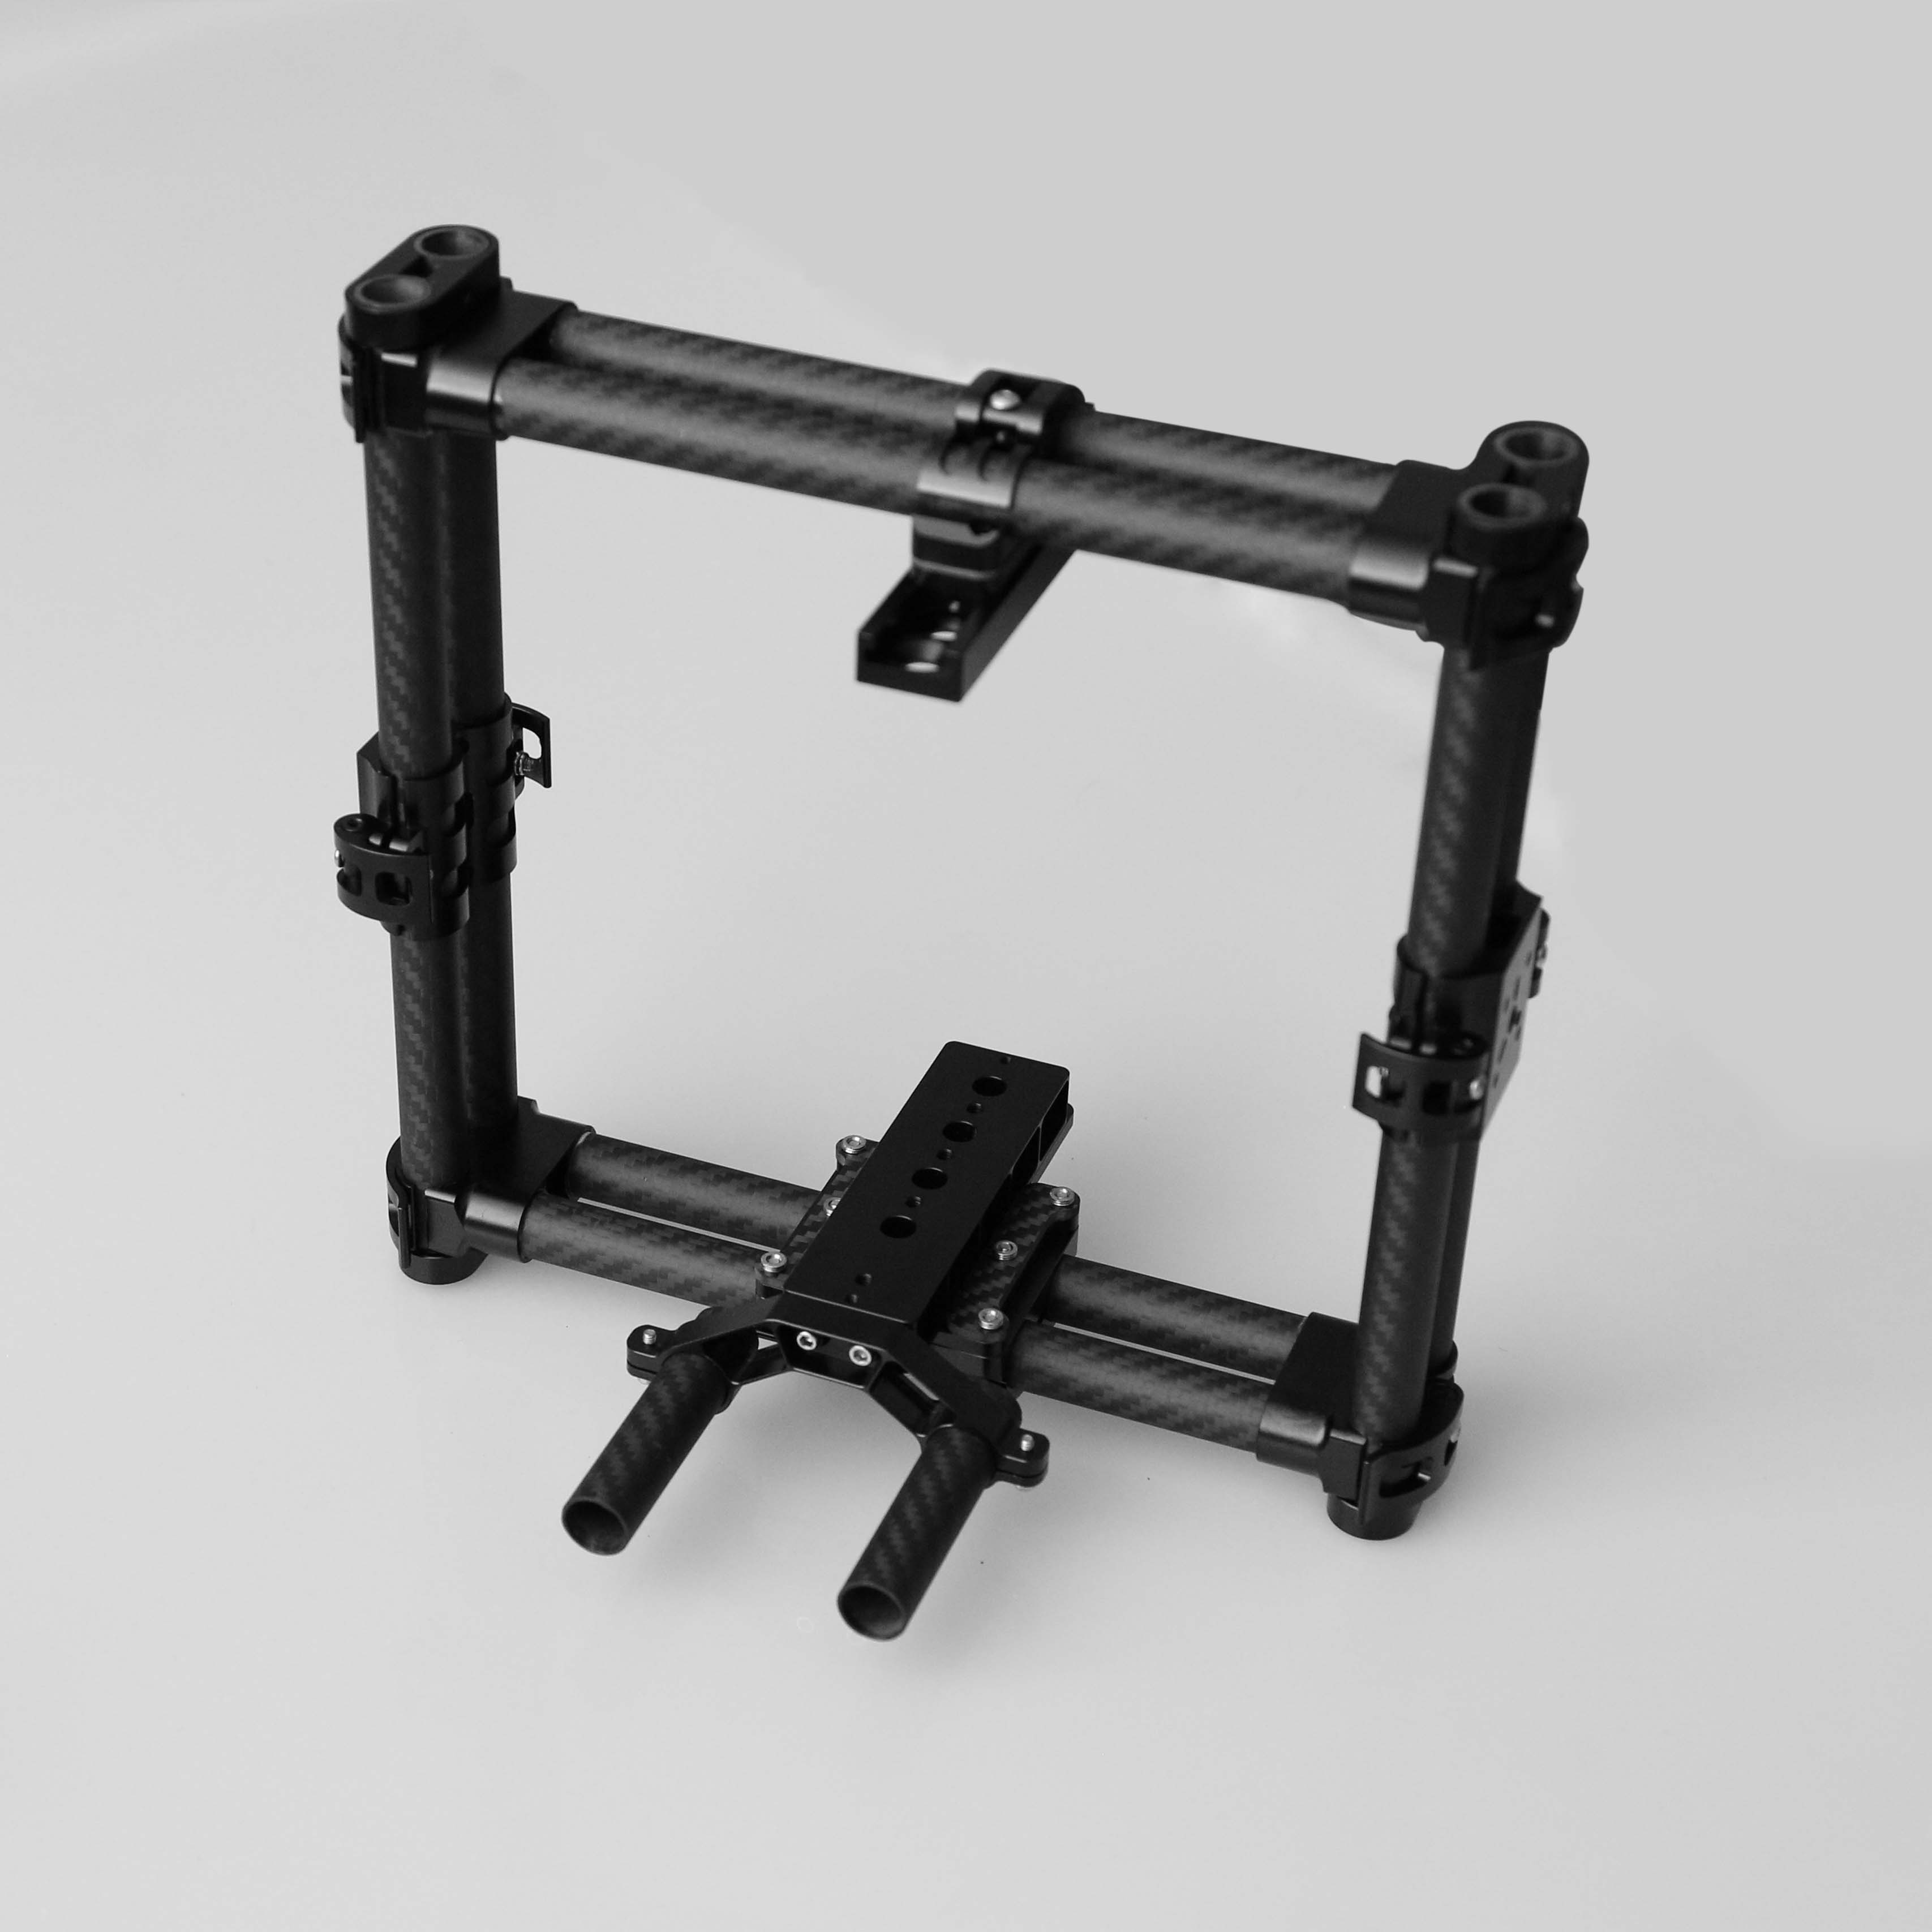 Tilt bar system for BG003 pro gimbal